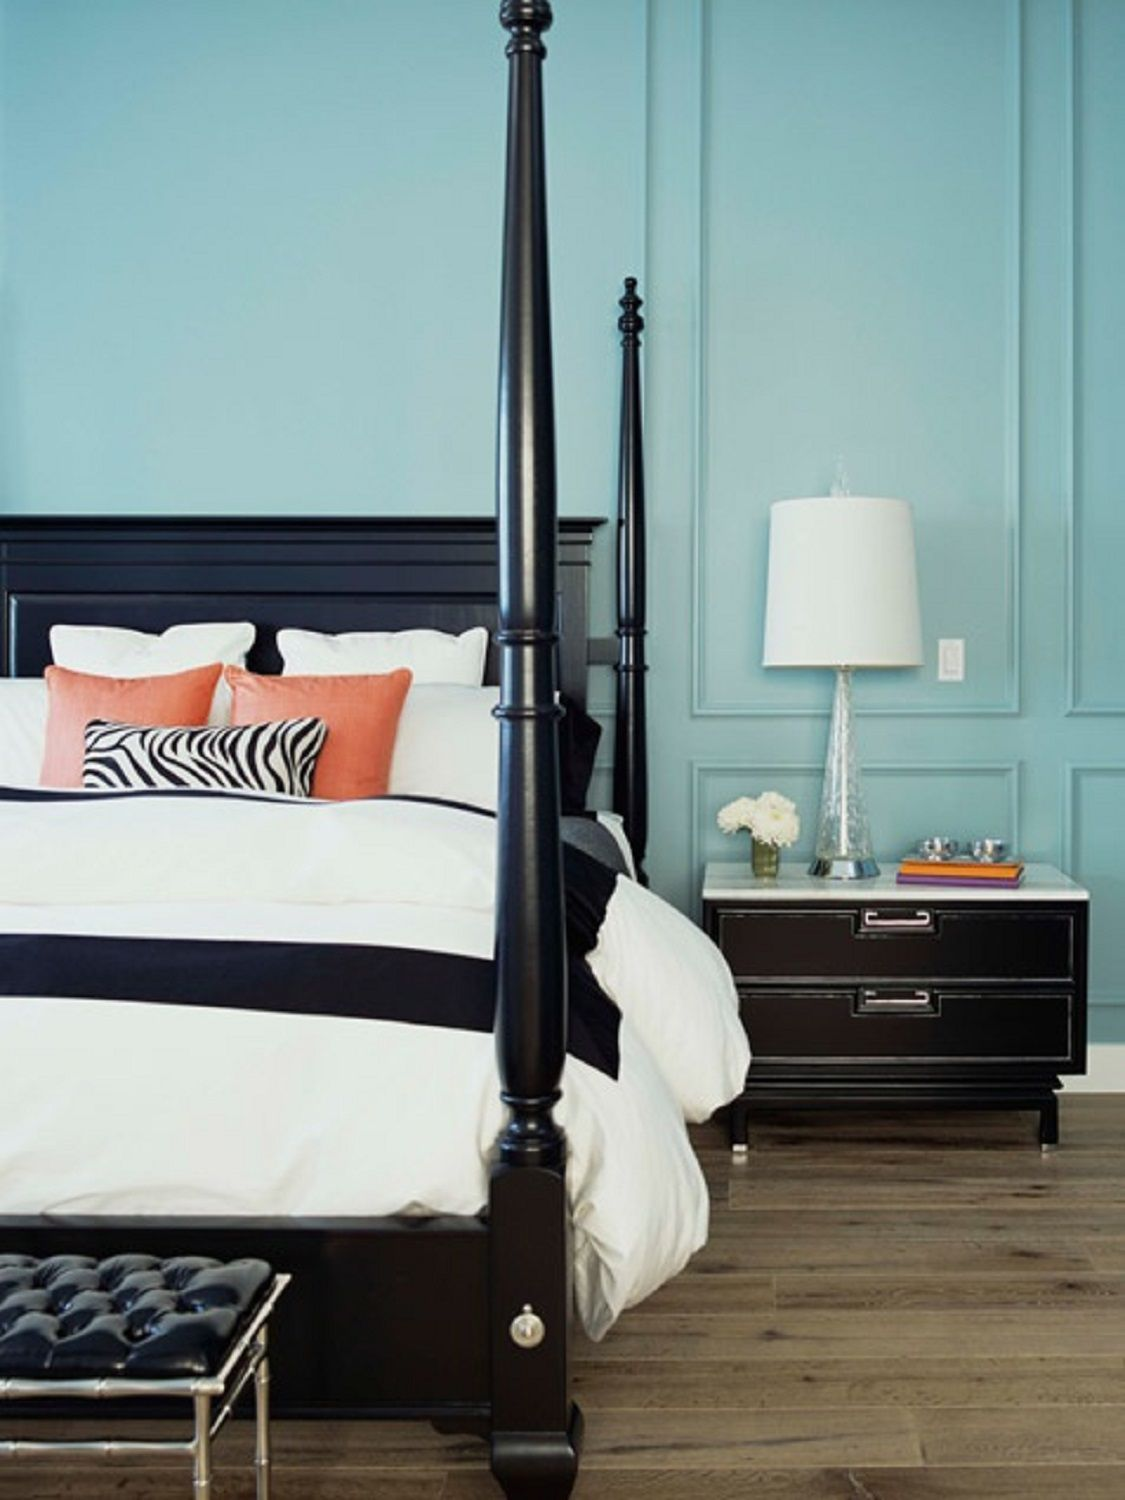 Bedroom with light turquoise walls.